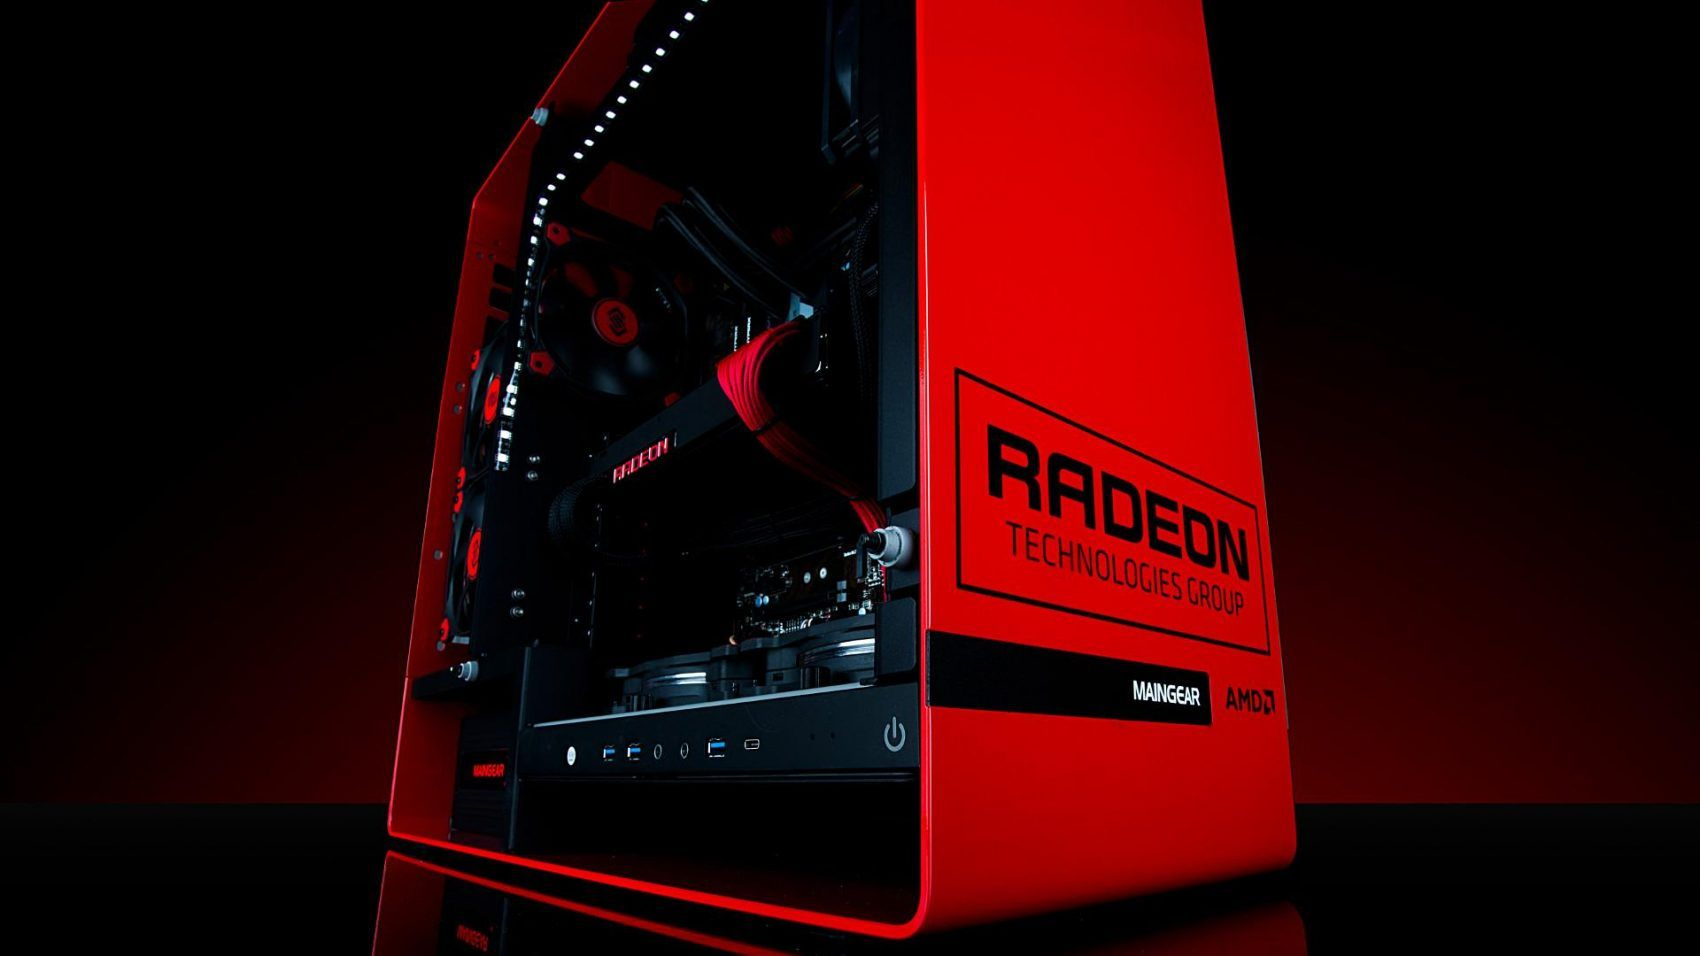 AMD graphics cards based on RDNA 2 architecture will be released in September